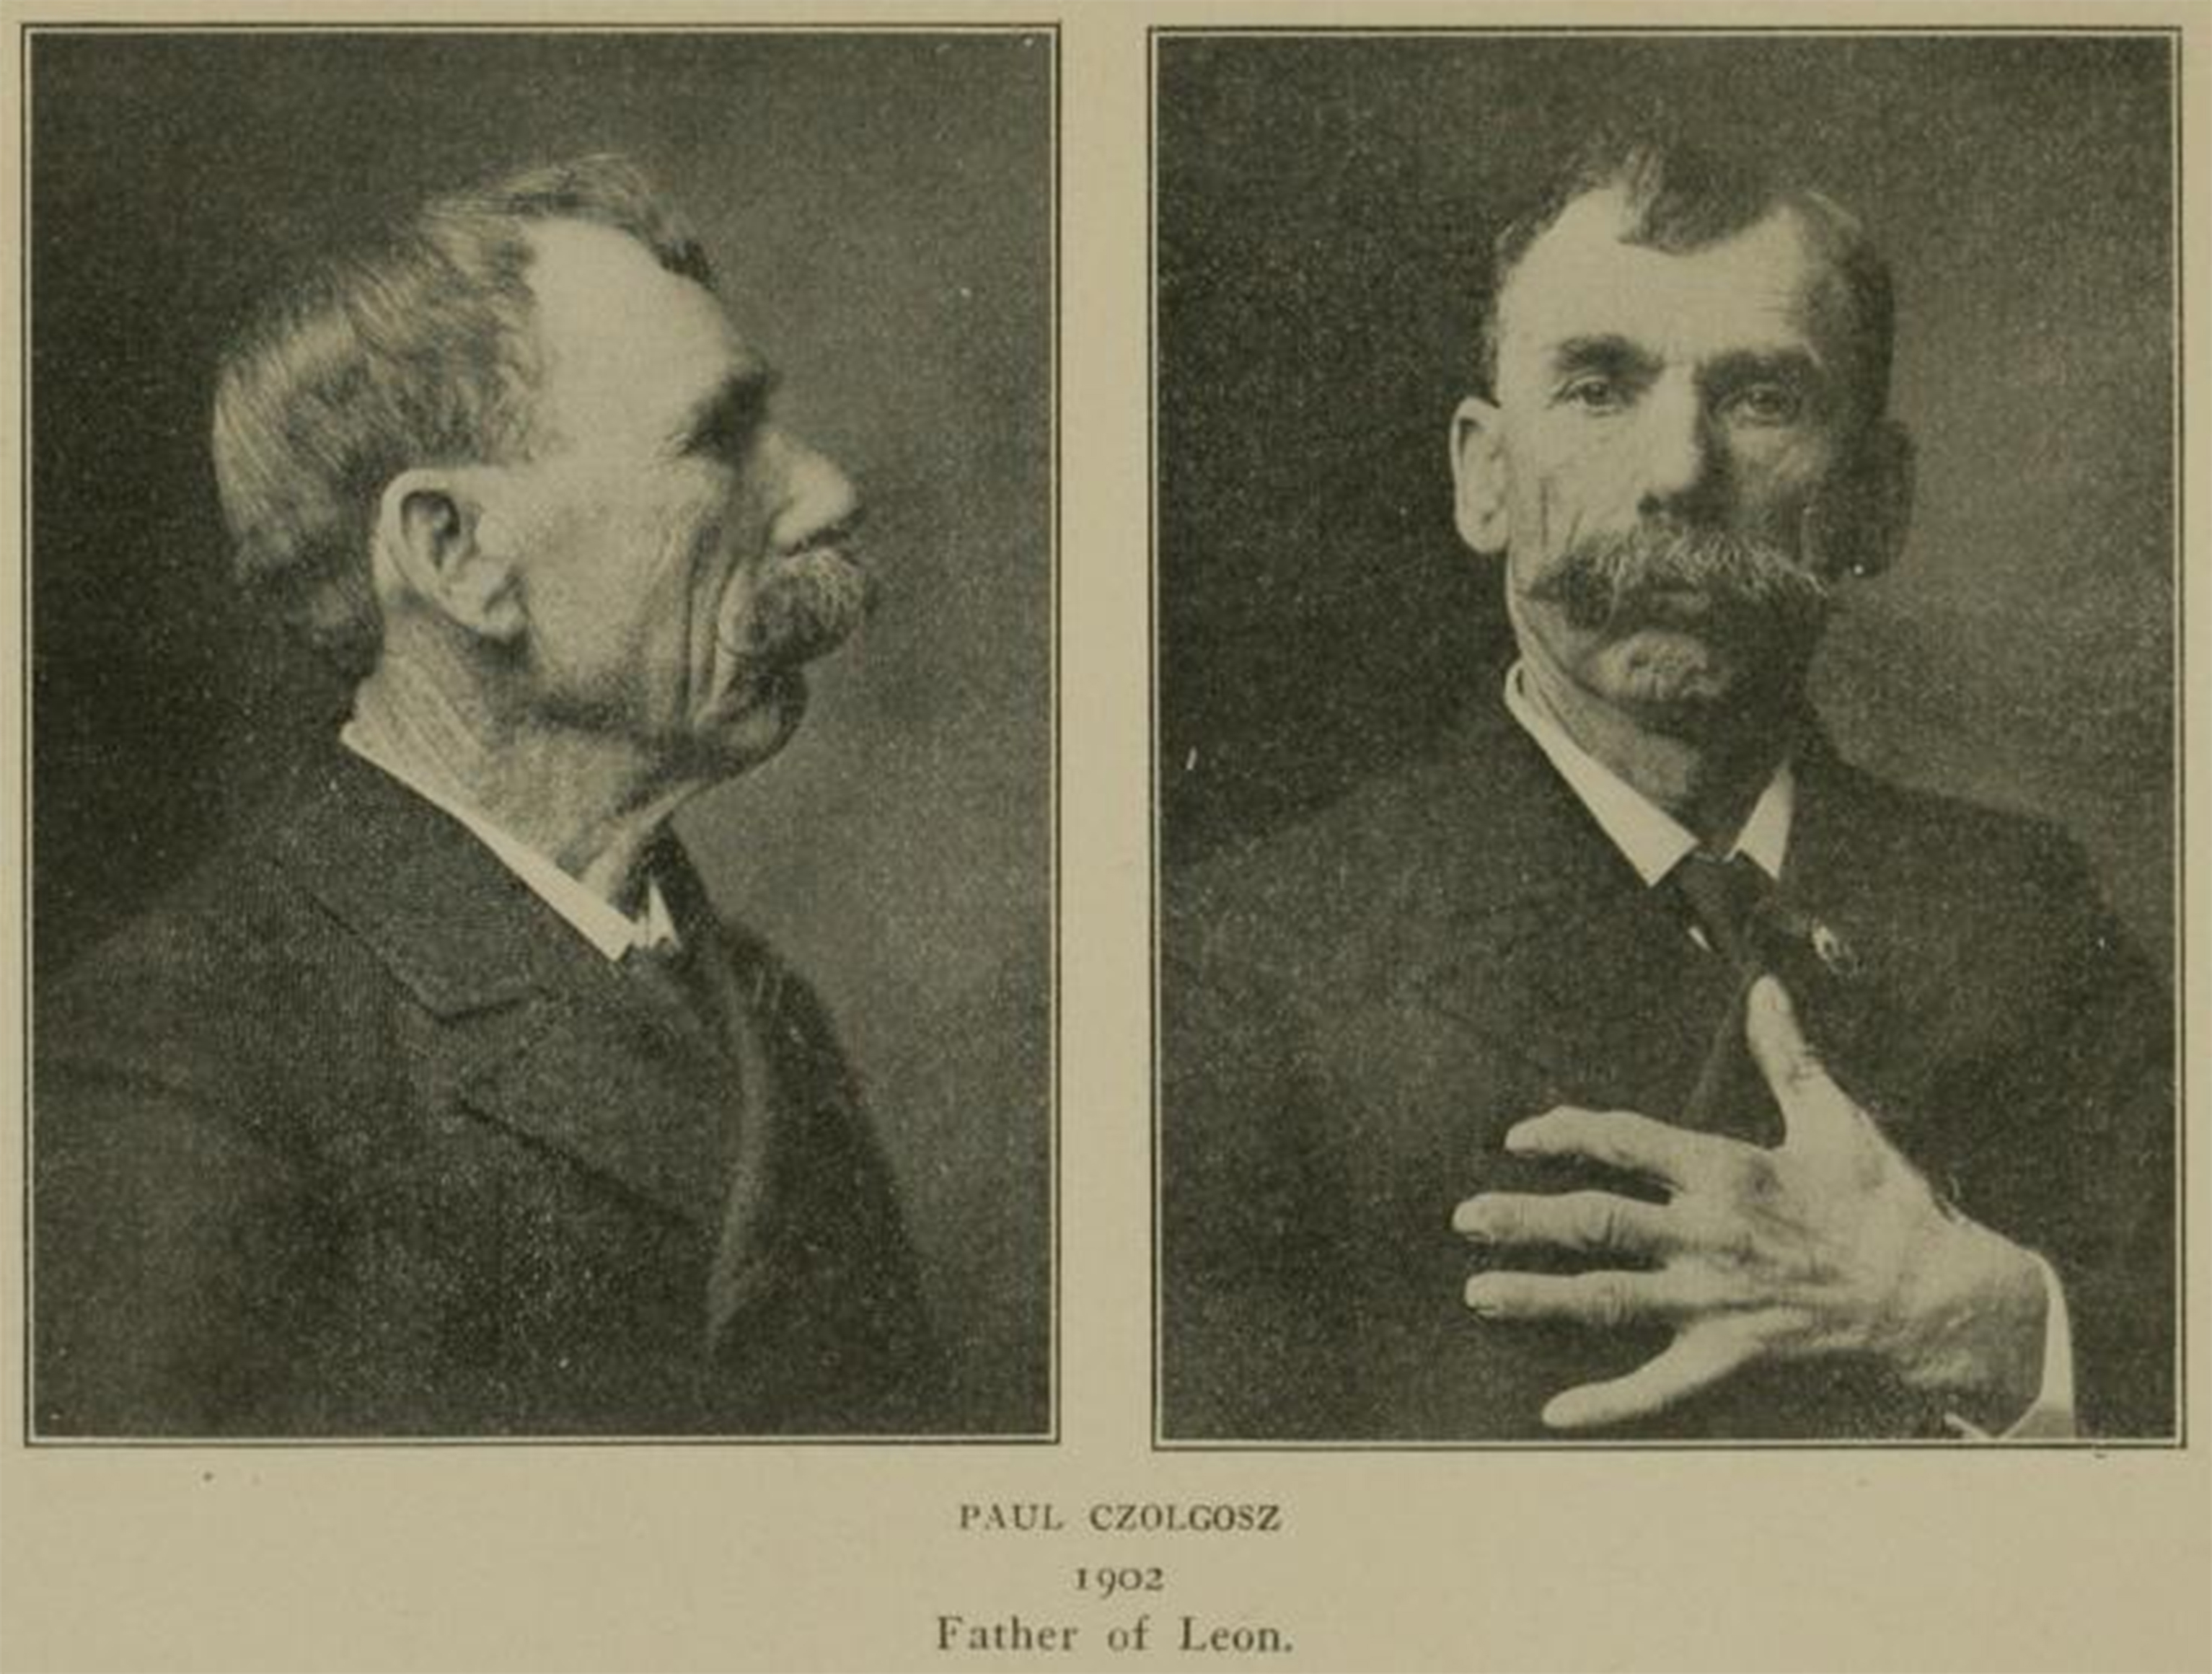 Fig. 3 Charles Horton & Co., Paul Czolgosz, Father of McKinley Assassin, 1902